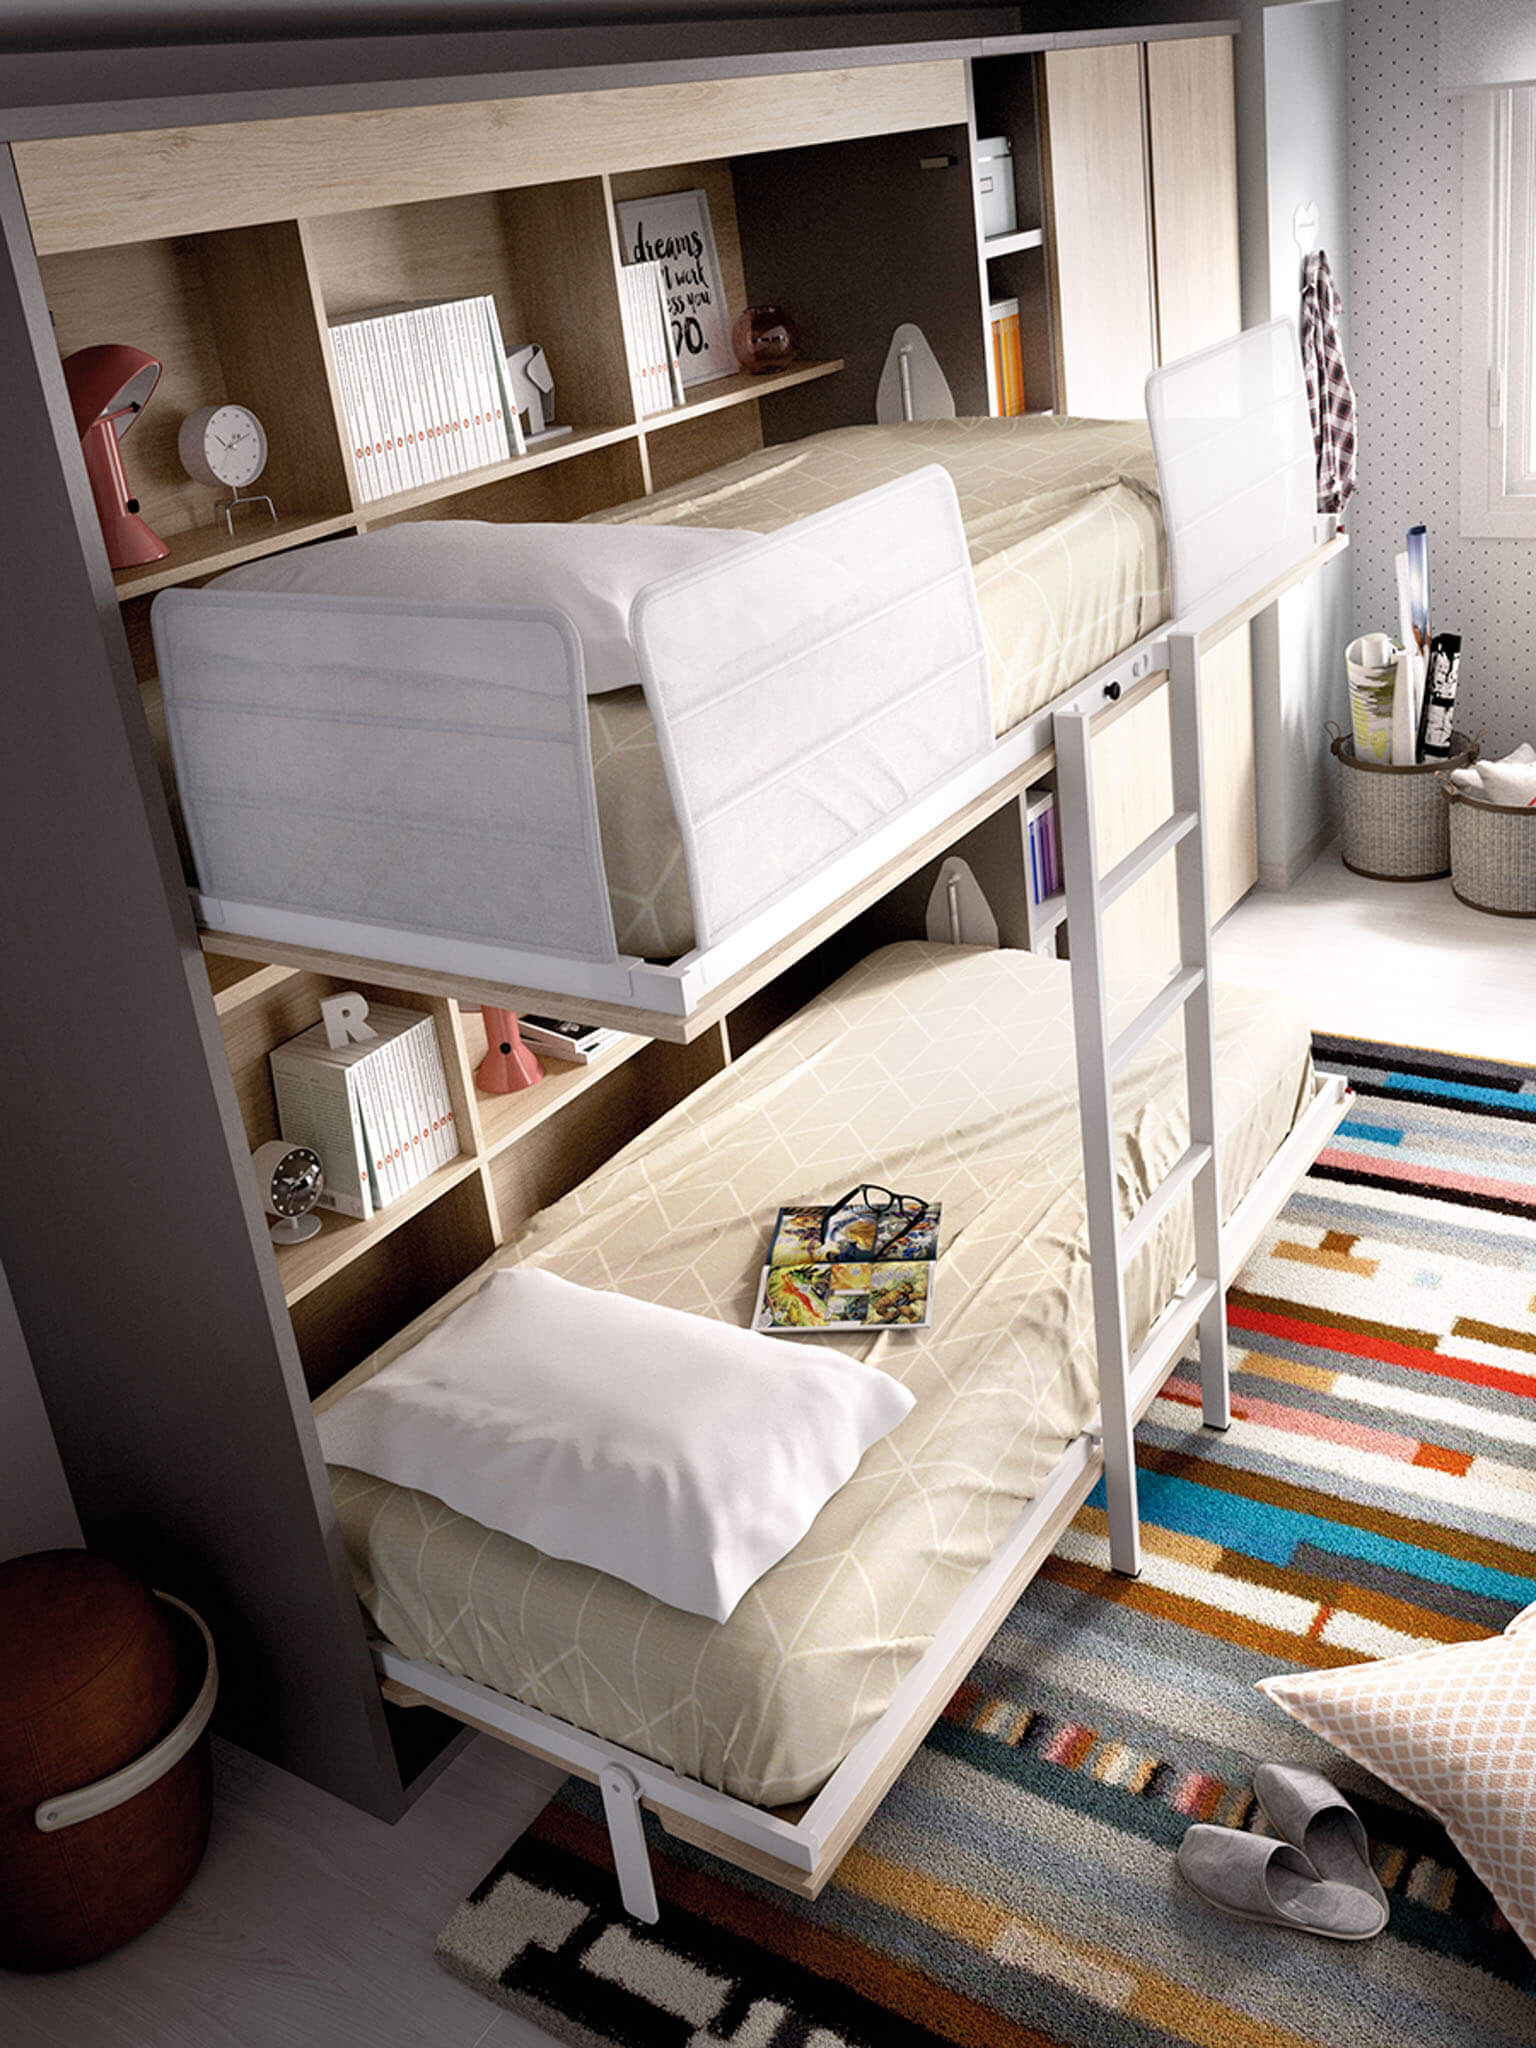 Bunk wall beds